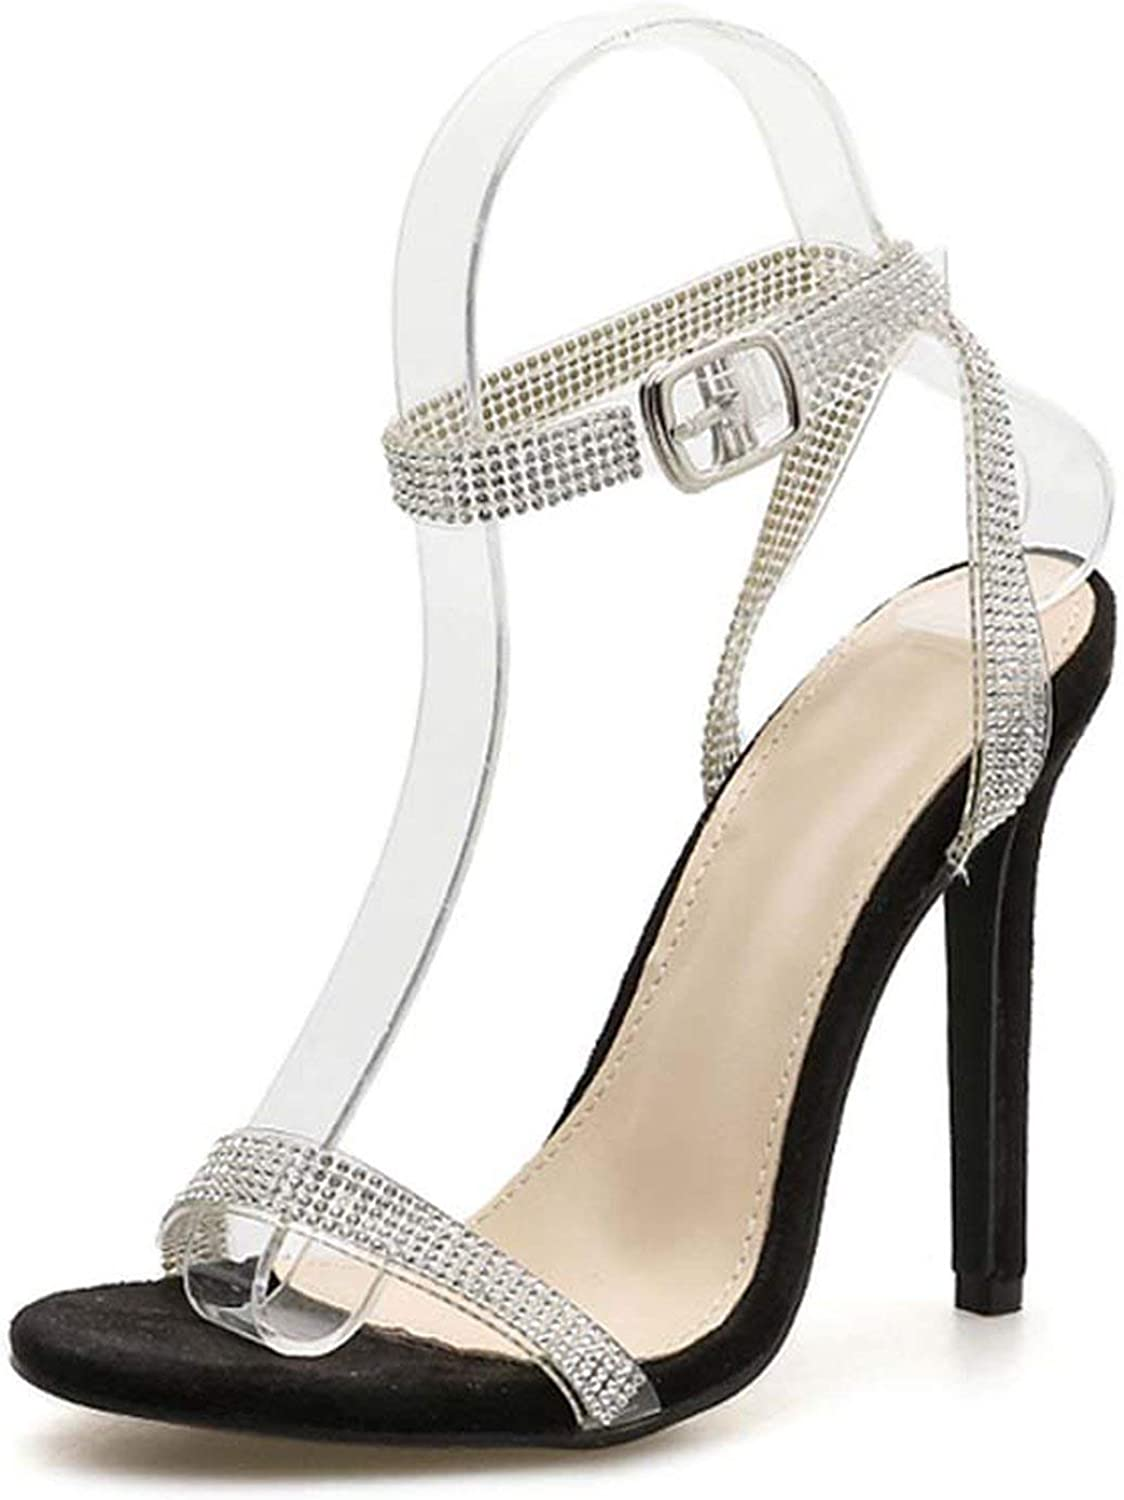 Hi Monkeys-Ssandals Silver Bling Crystal Sexy Women Sandals Buckle Strap Women Sandals Women shoes